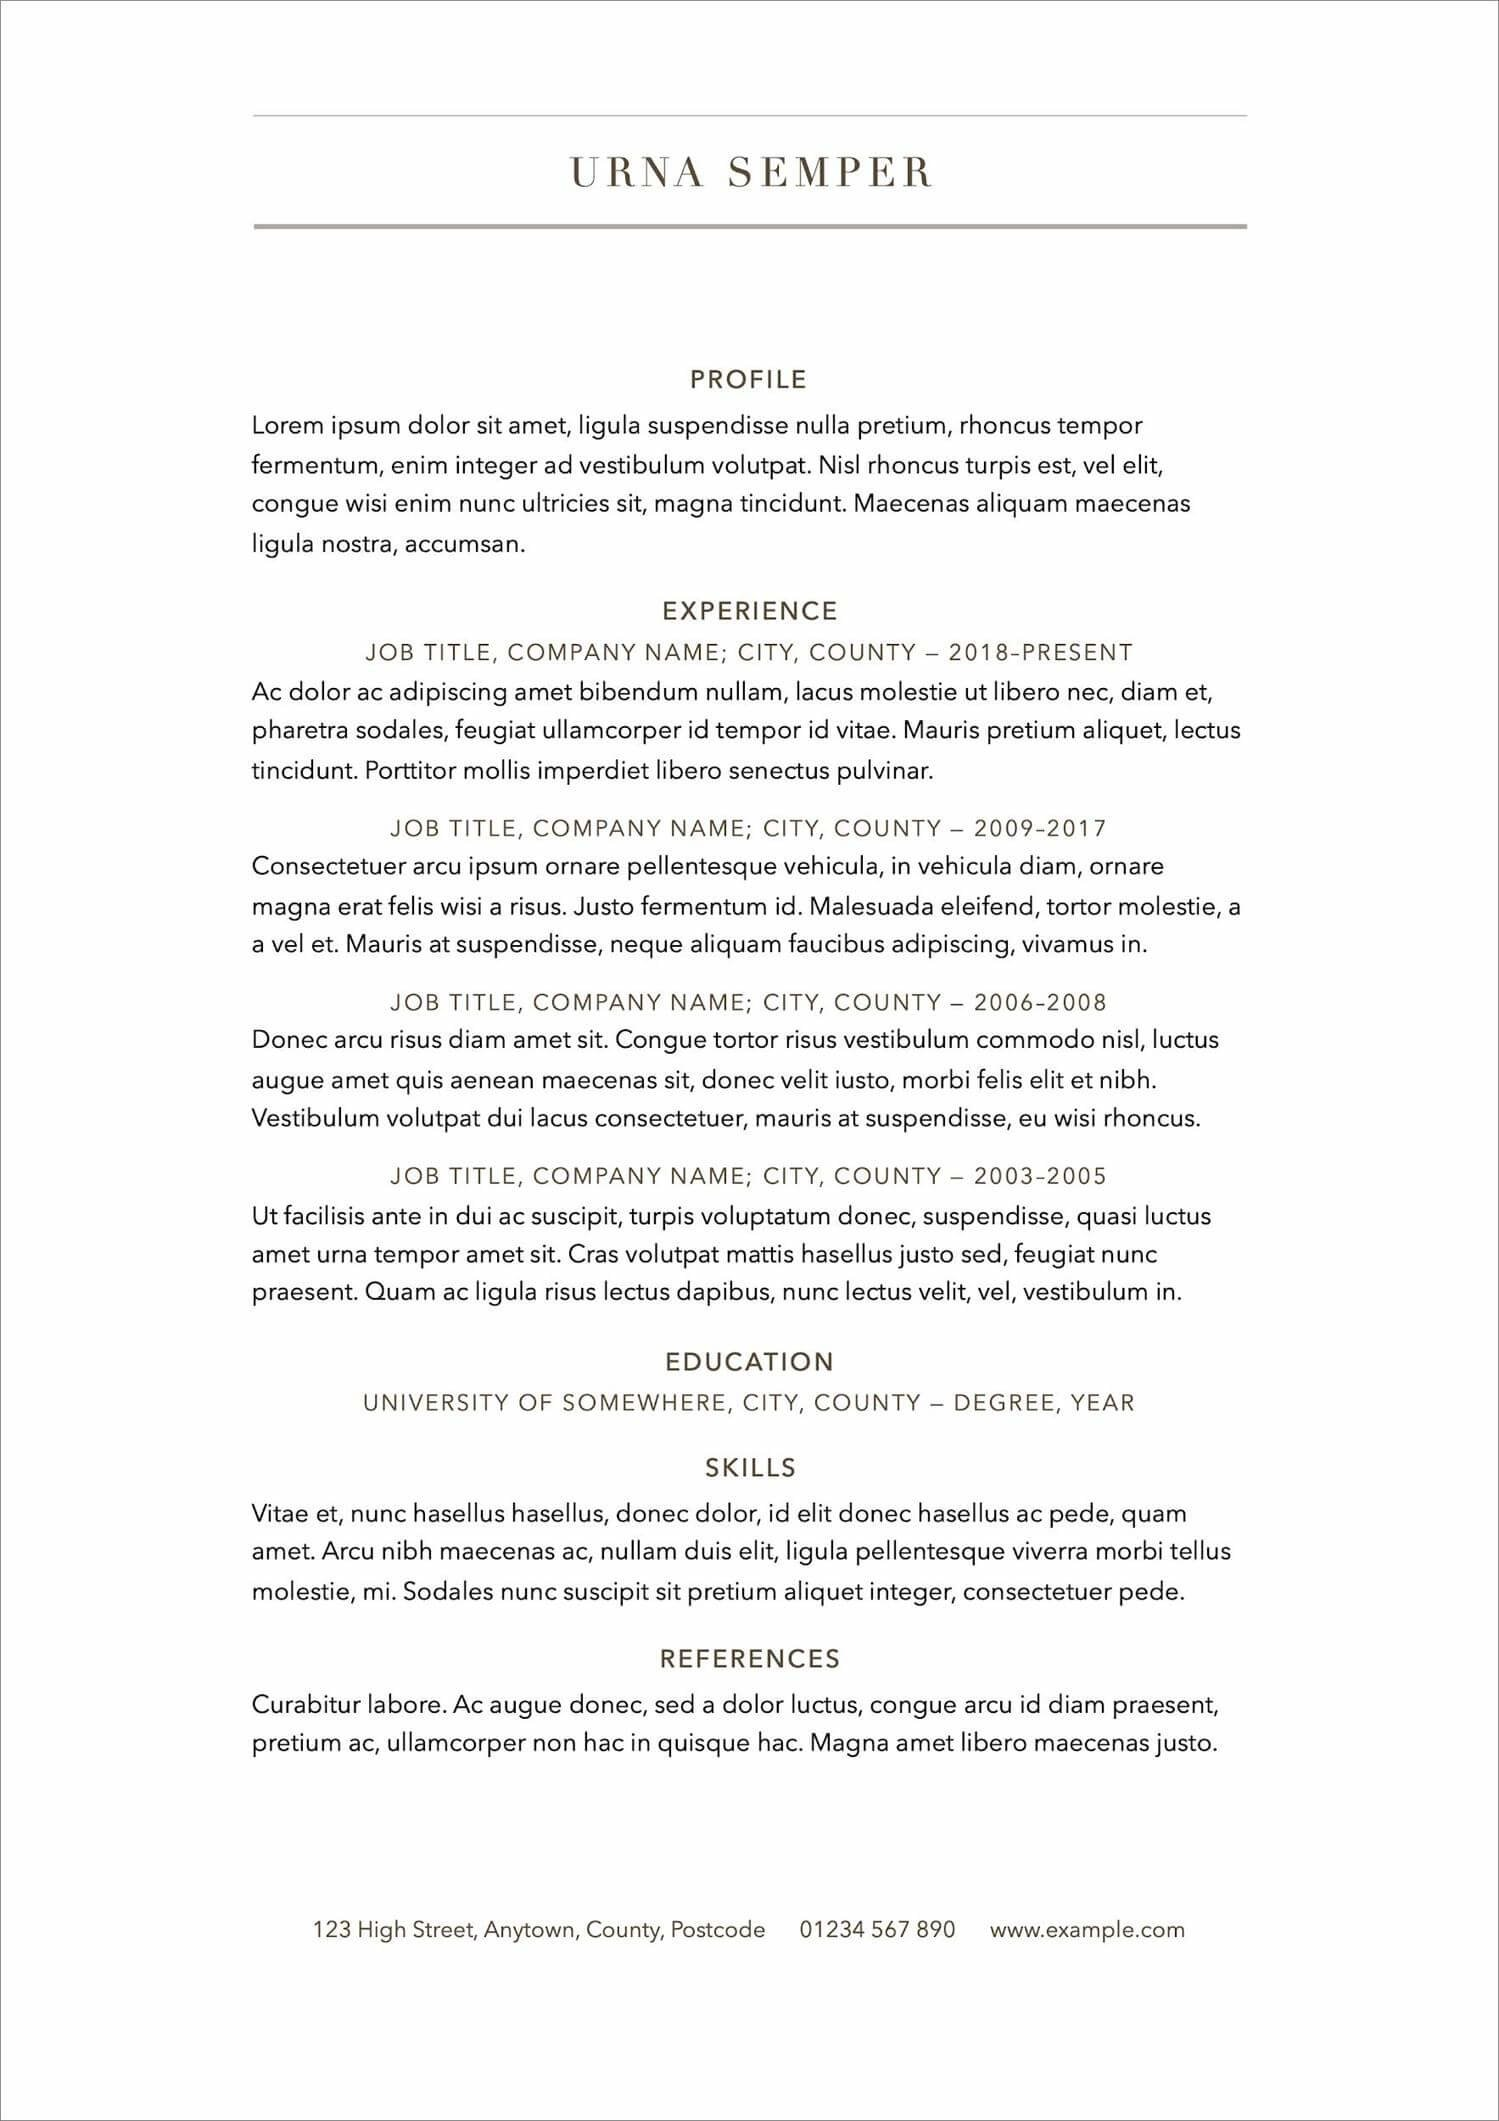 free resume templates for to now sample professional template new admin manager examples Resume Free Sample Professional Resume Template